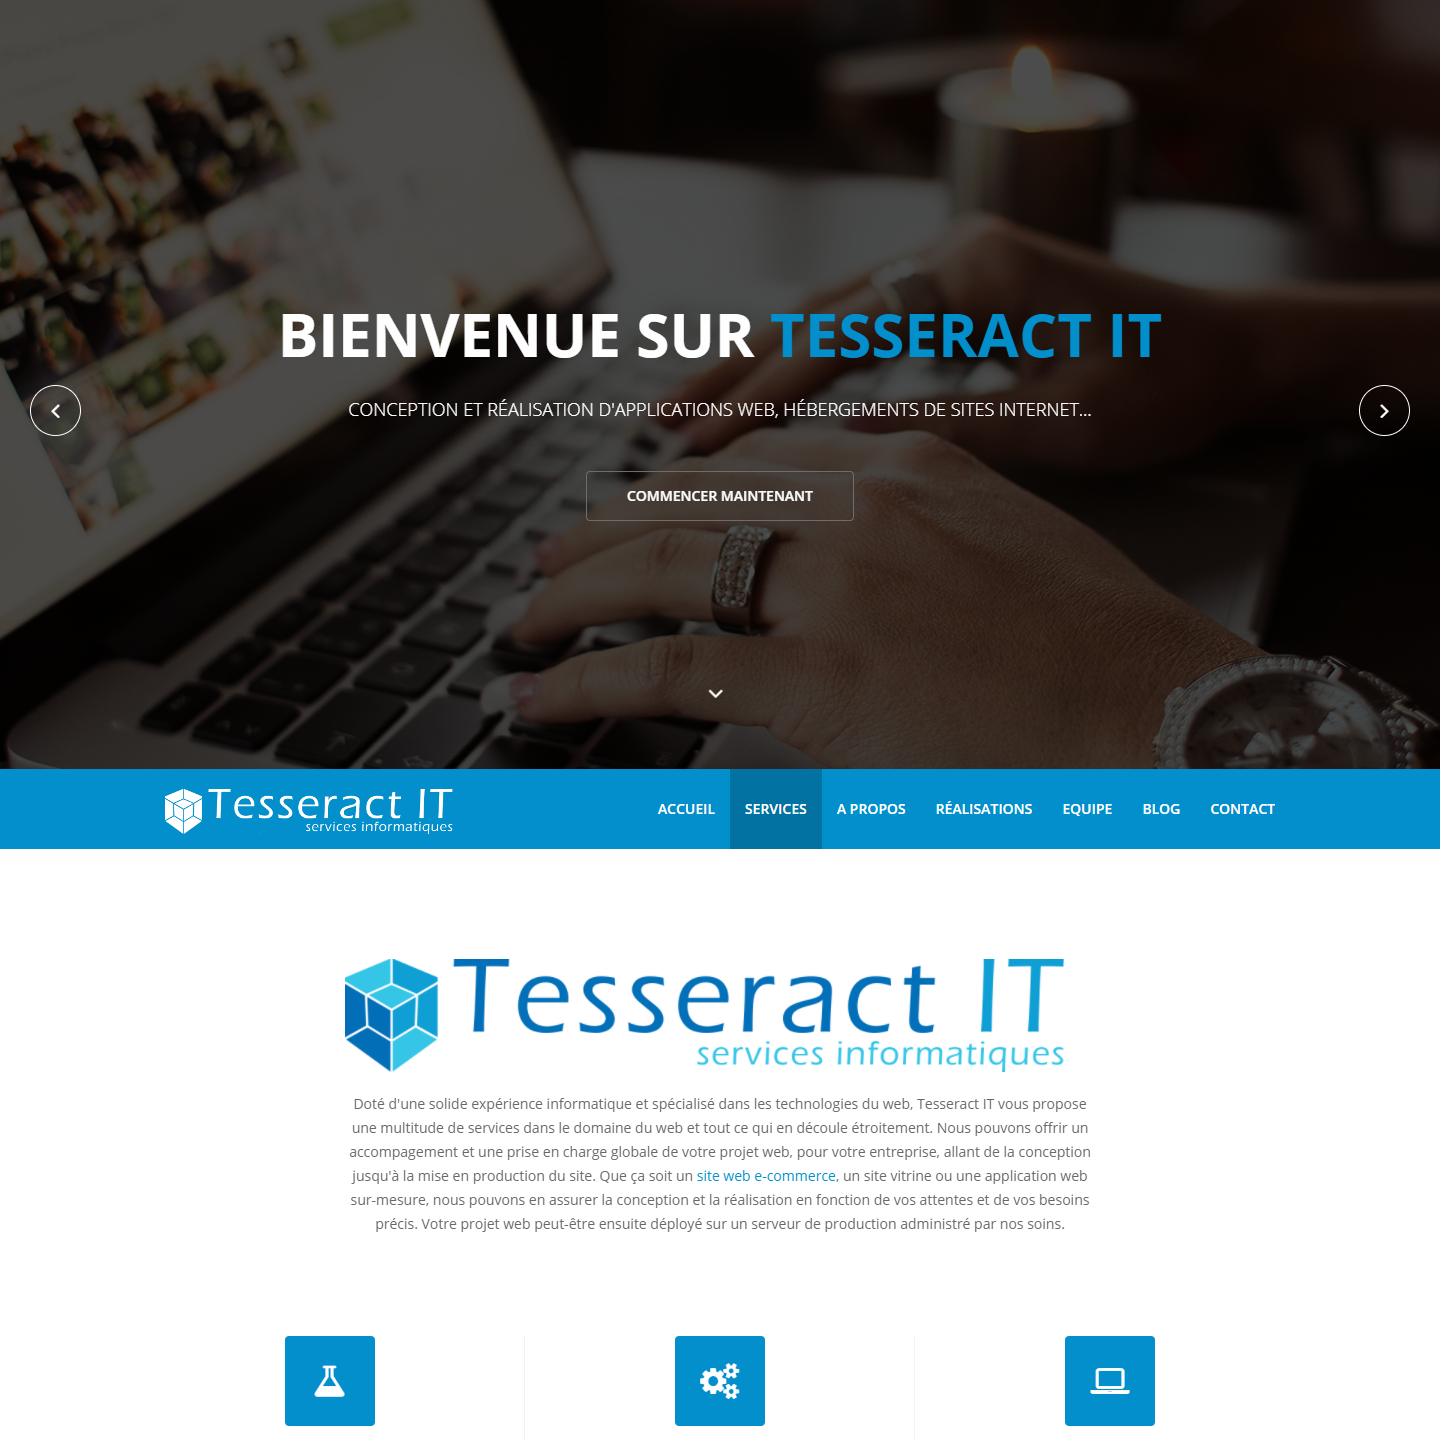 Capture du projet web Tesseract IT - services informatiques